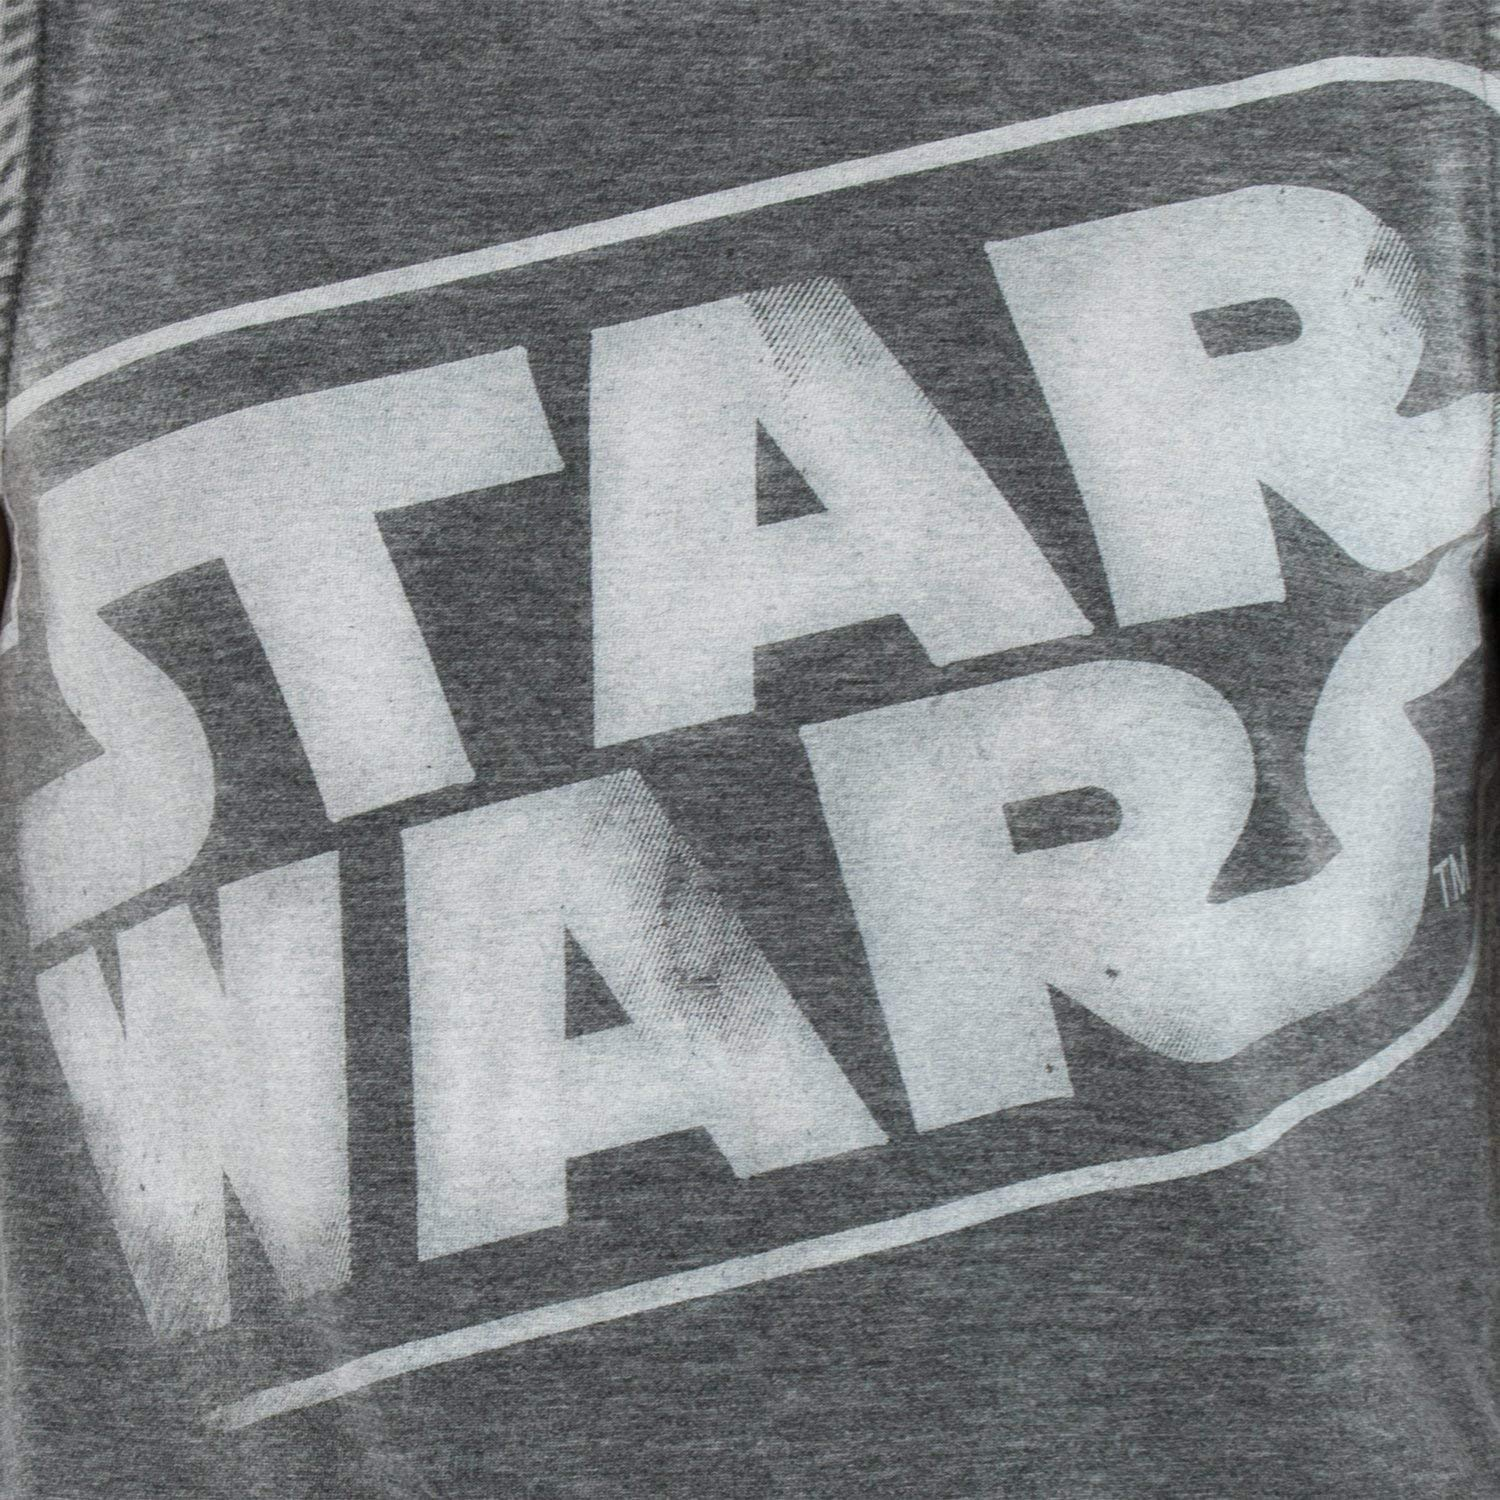 Women's Star Wars Logo Tank Top on Amazon